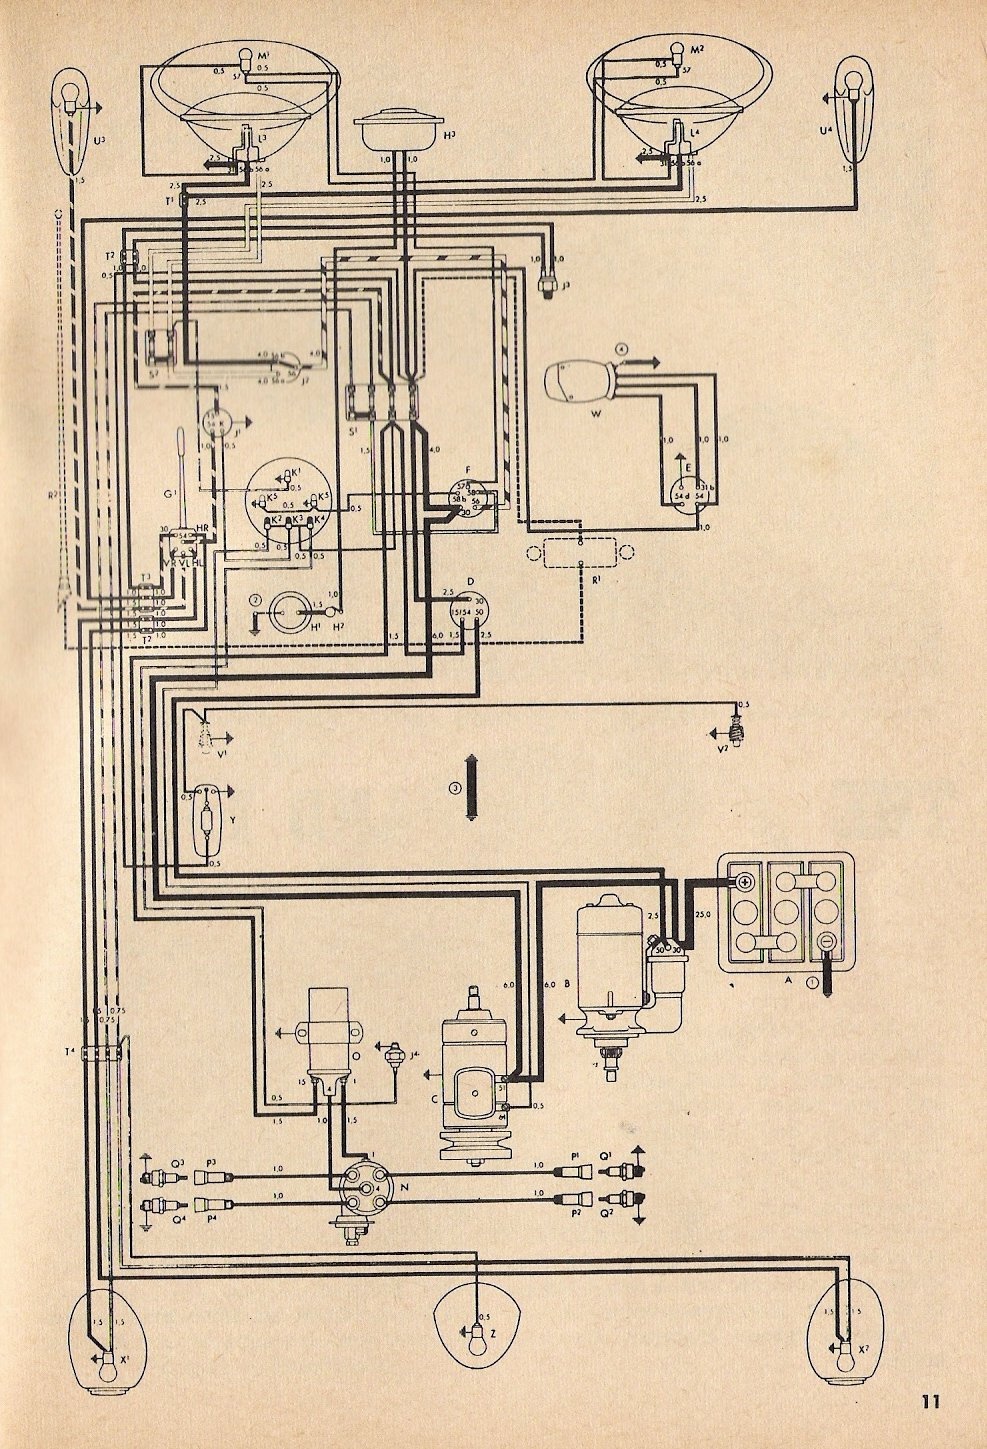 bug_toaug57 1957 beetle wiring diagram thegoldenbug com 1968 vw bug headlight wiring diagram at soozxer.org